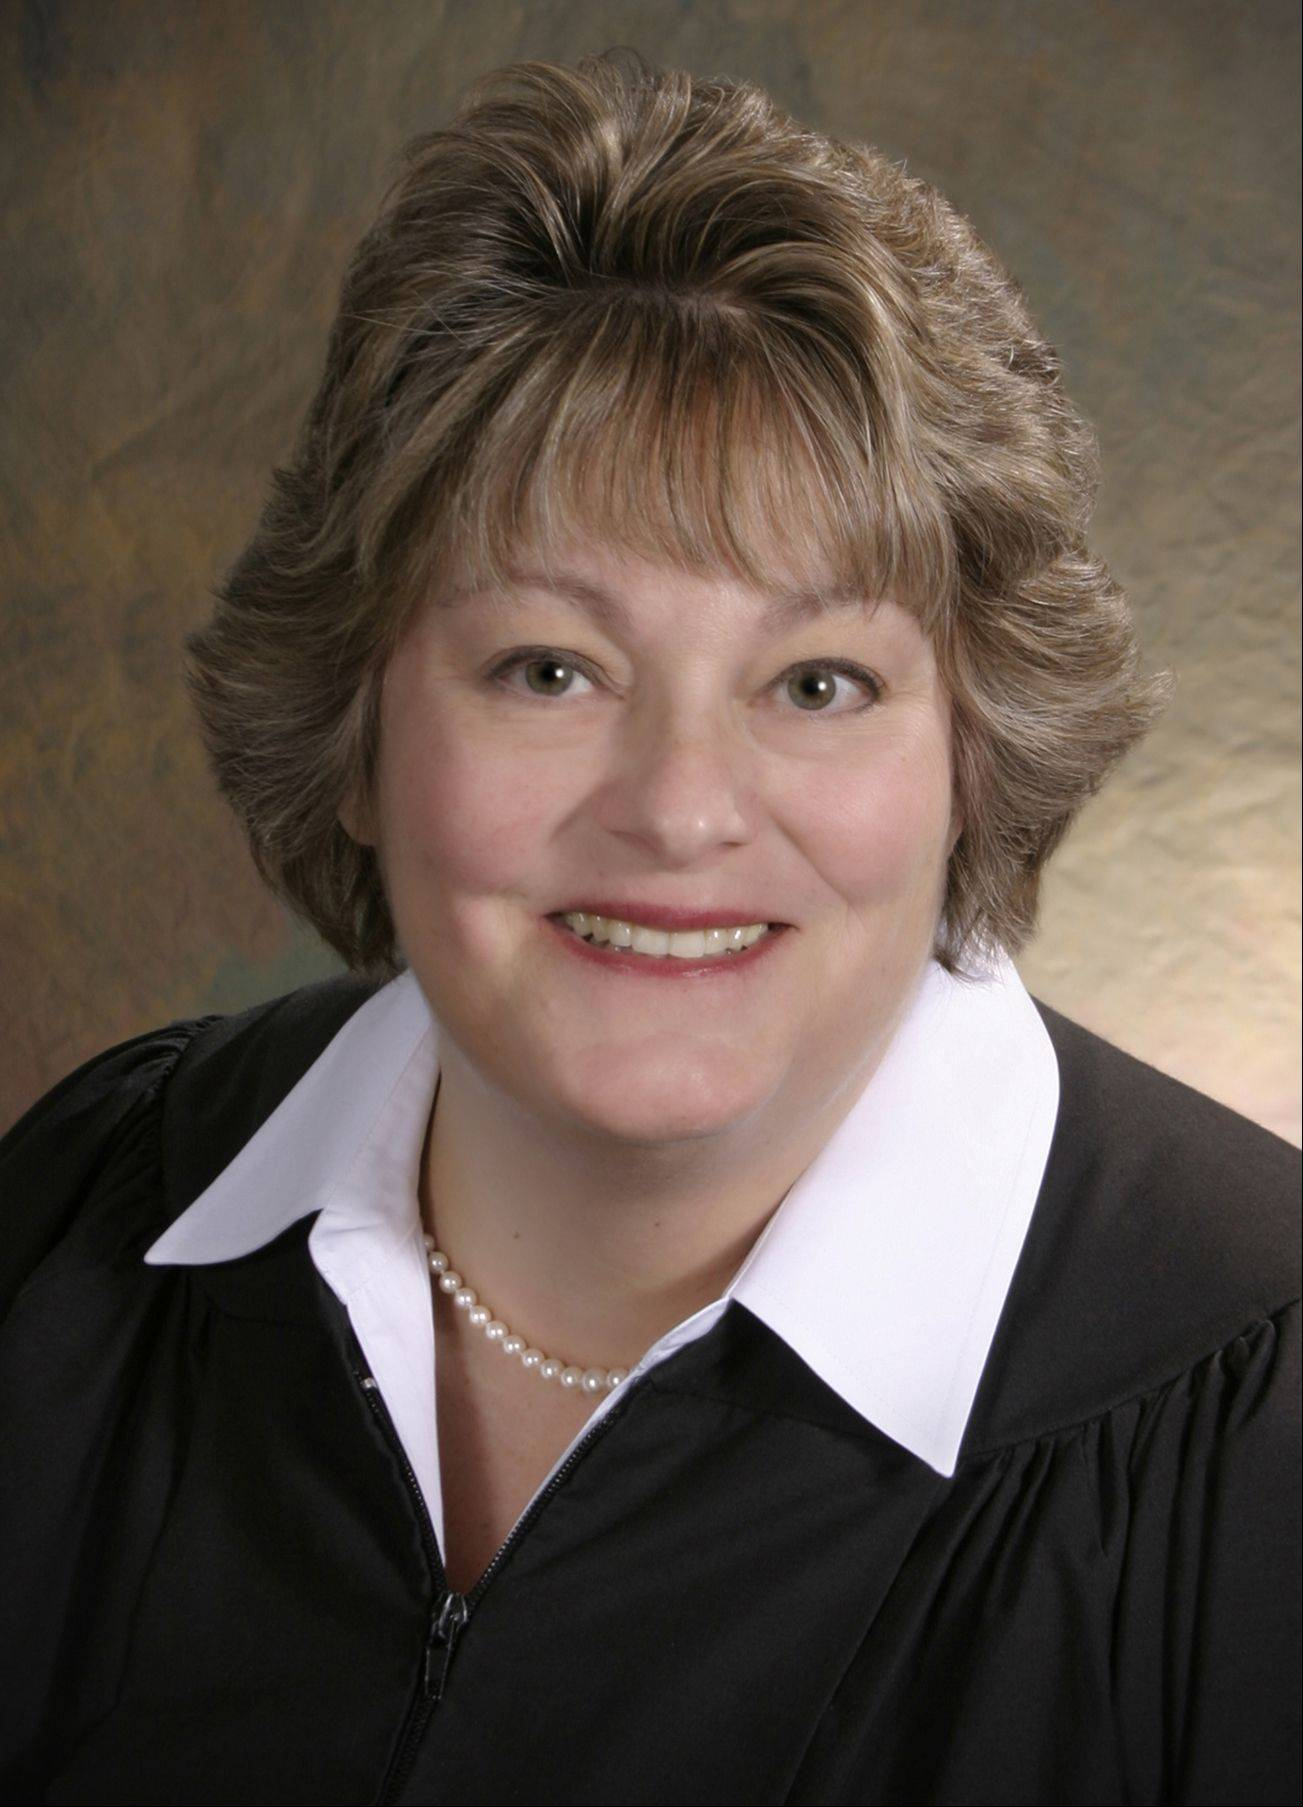 New Kane County Chief Judge Judith M. Brawka